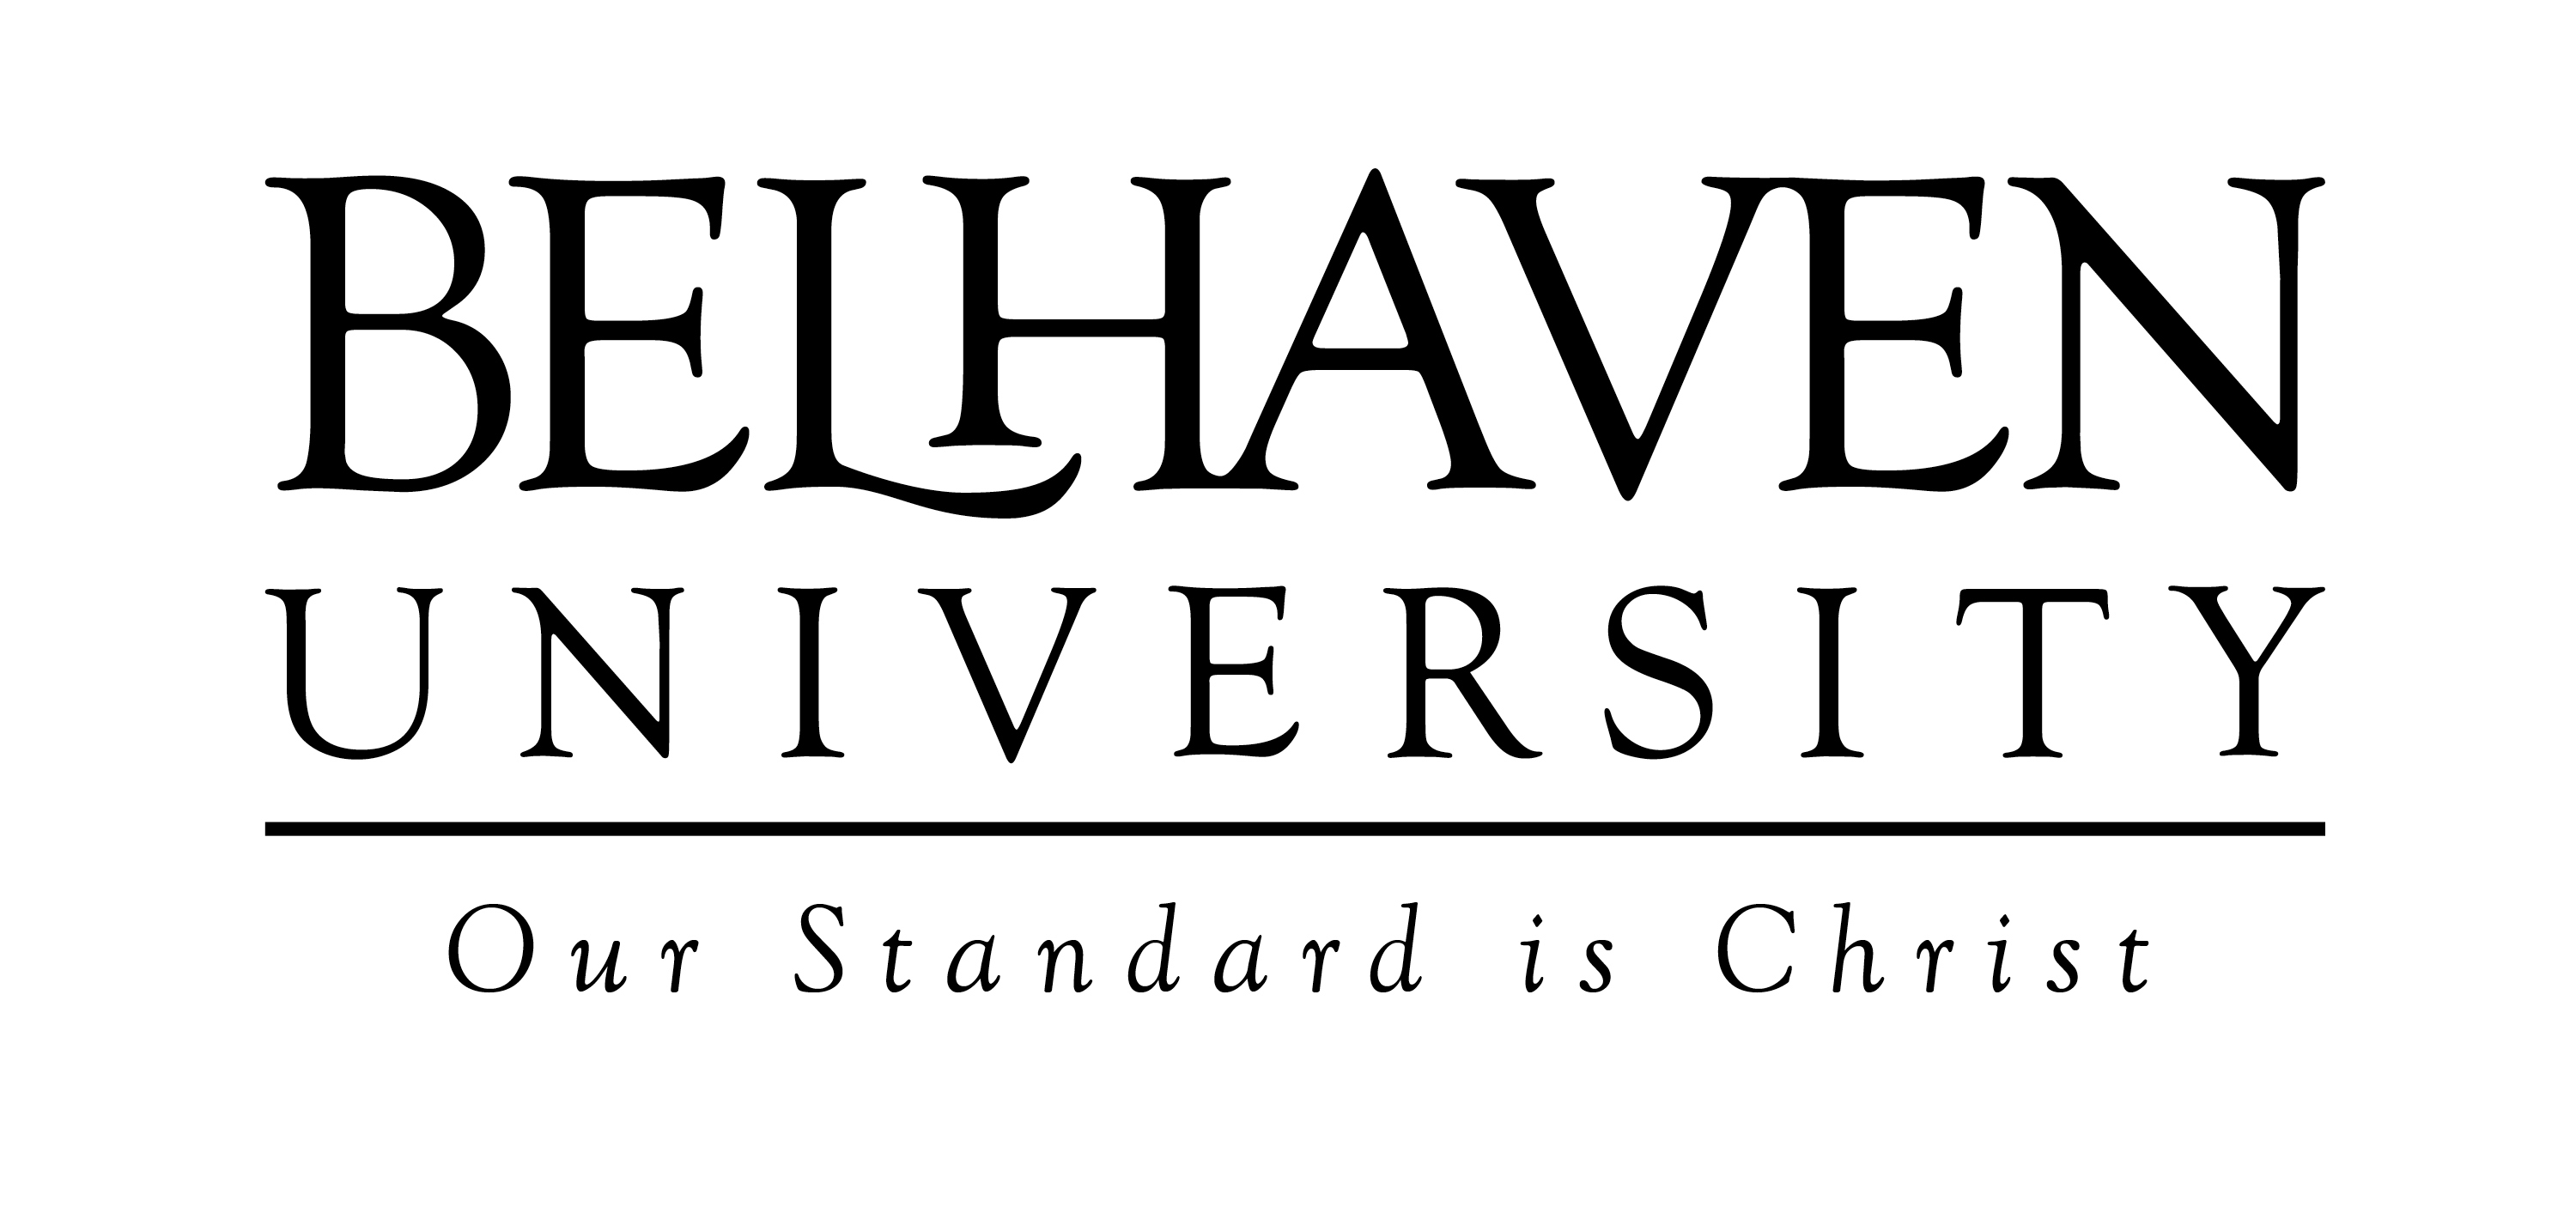 More about Belhaven University